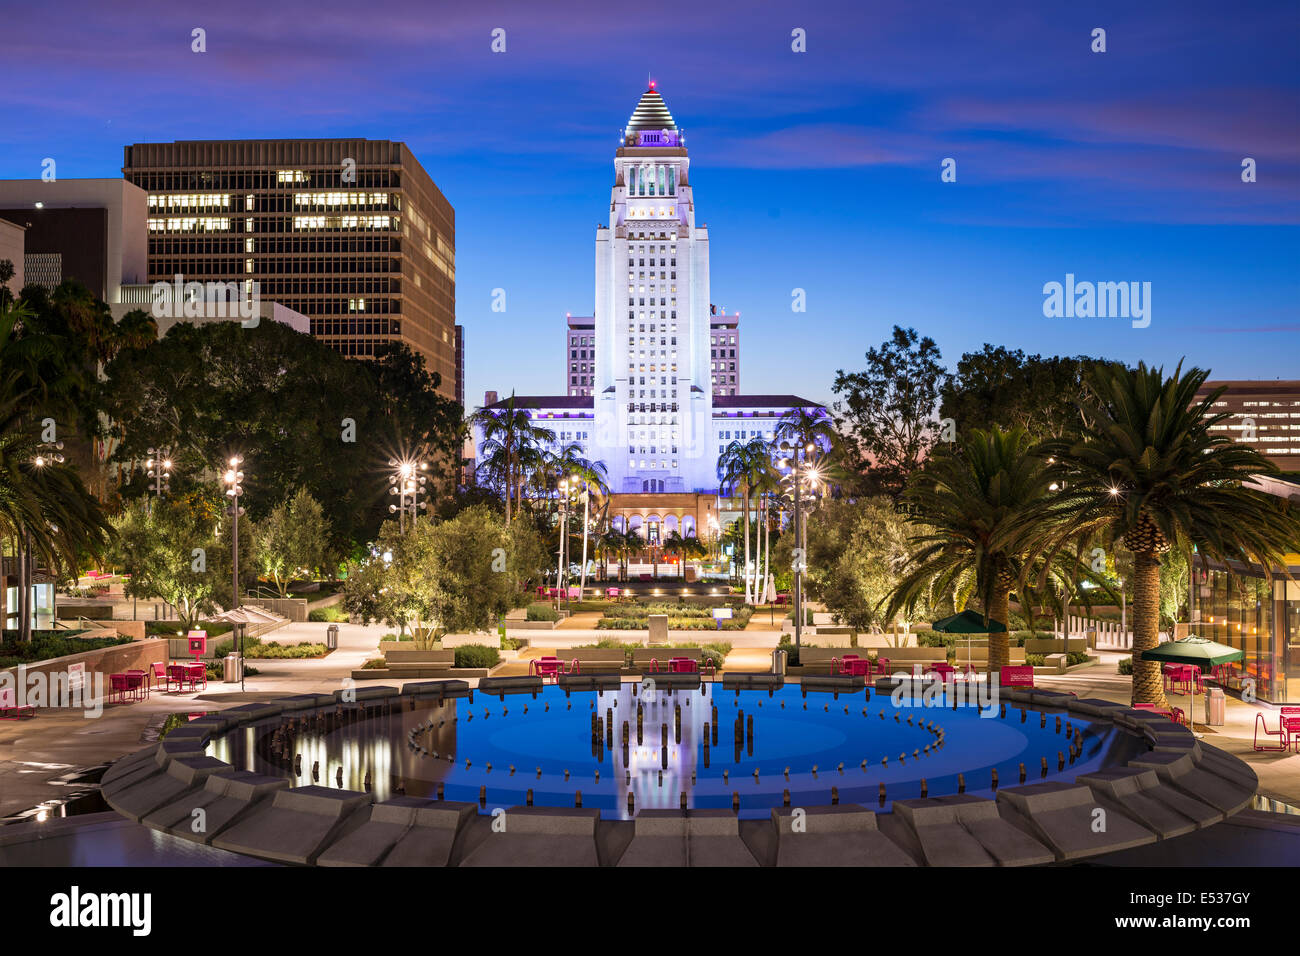 Los Angeles, California, USA downtown at city hall. - Stock Image